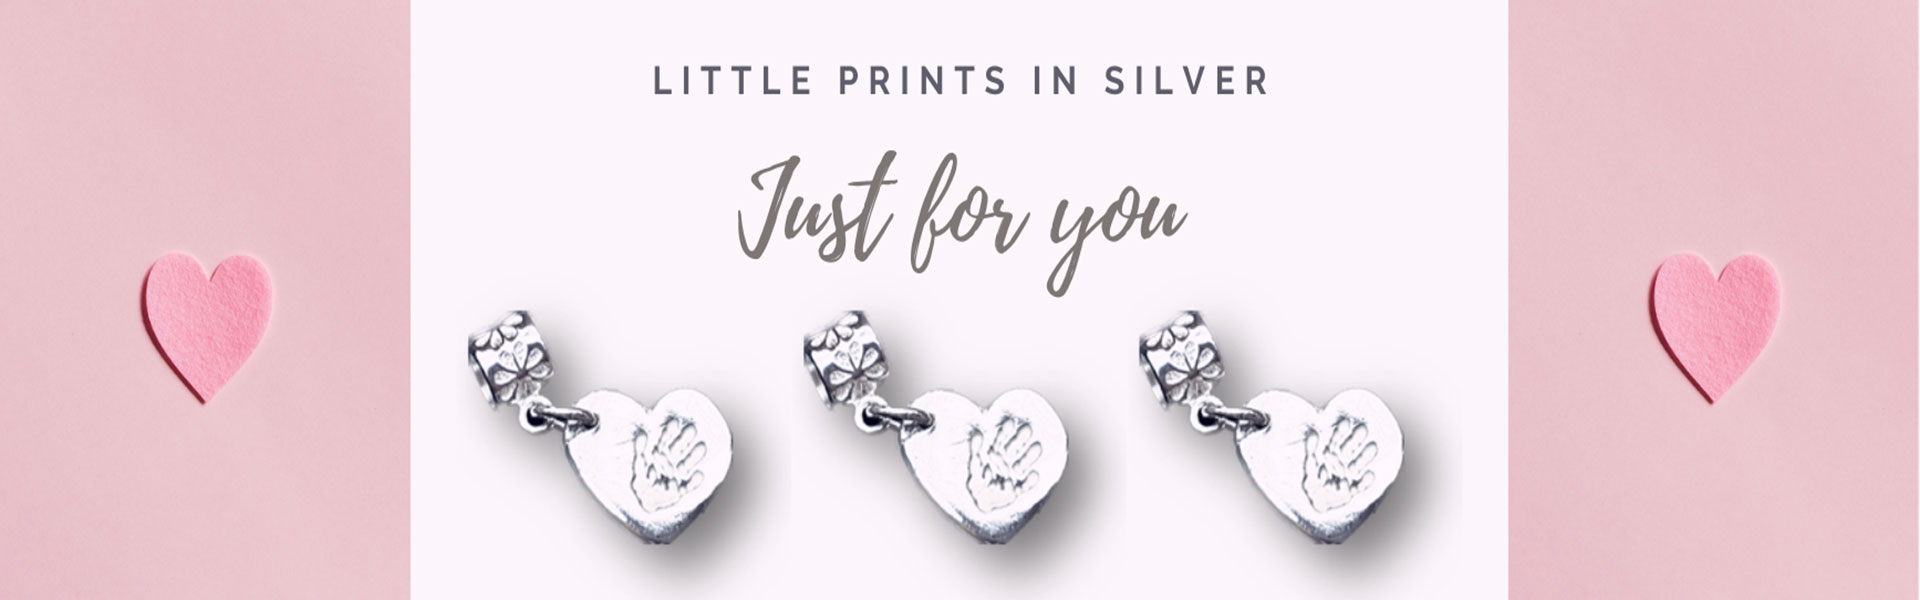 silver imprint charms picture